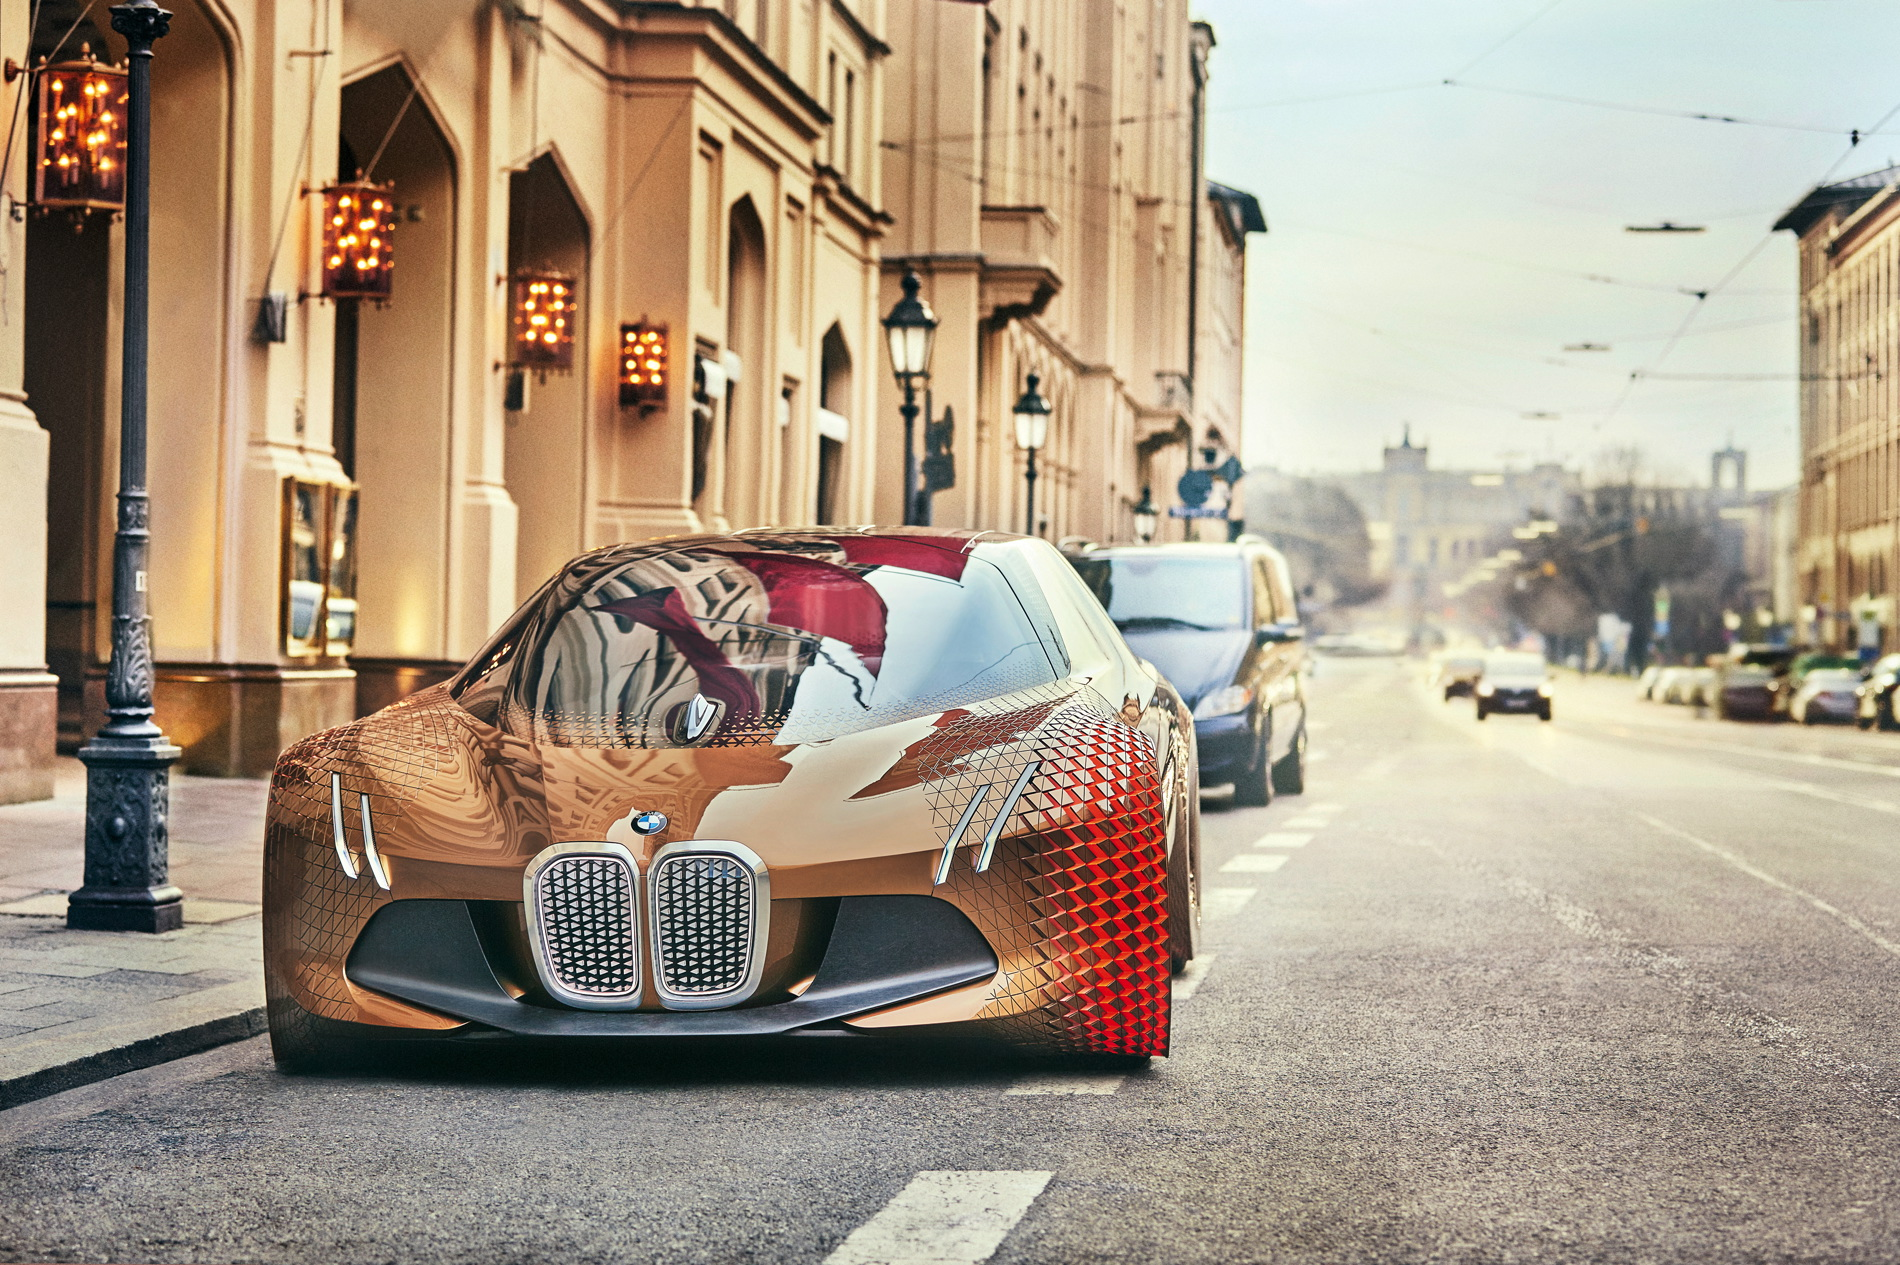 BMW Vision Next 100 images 127